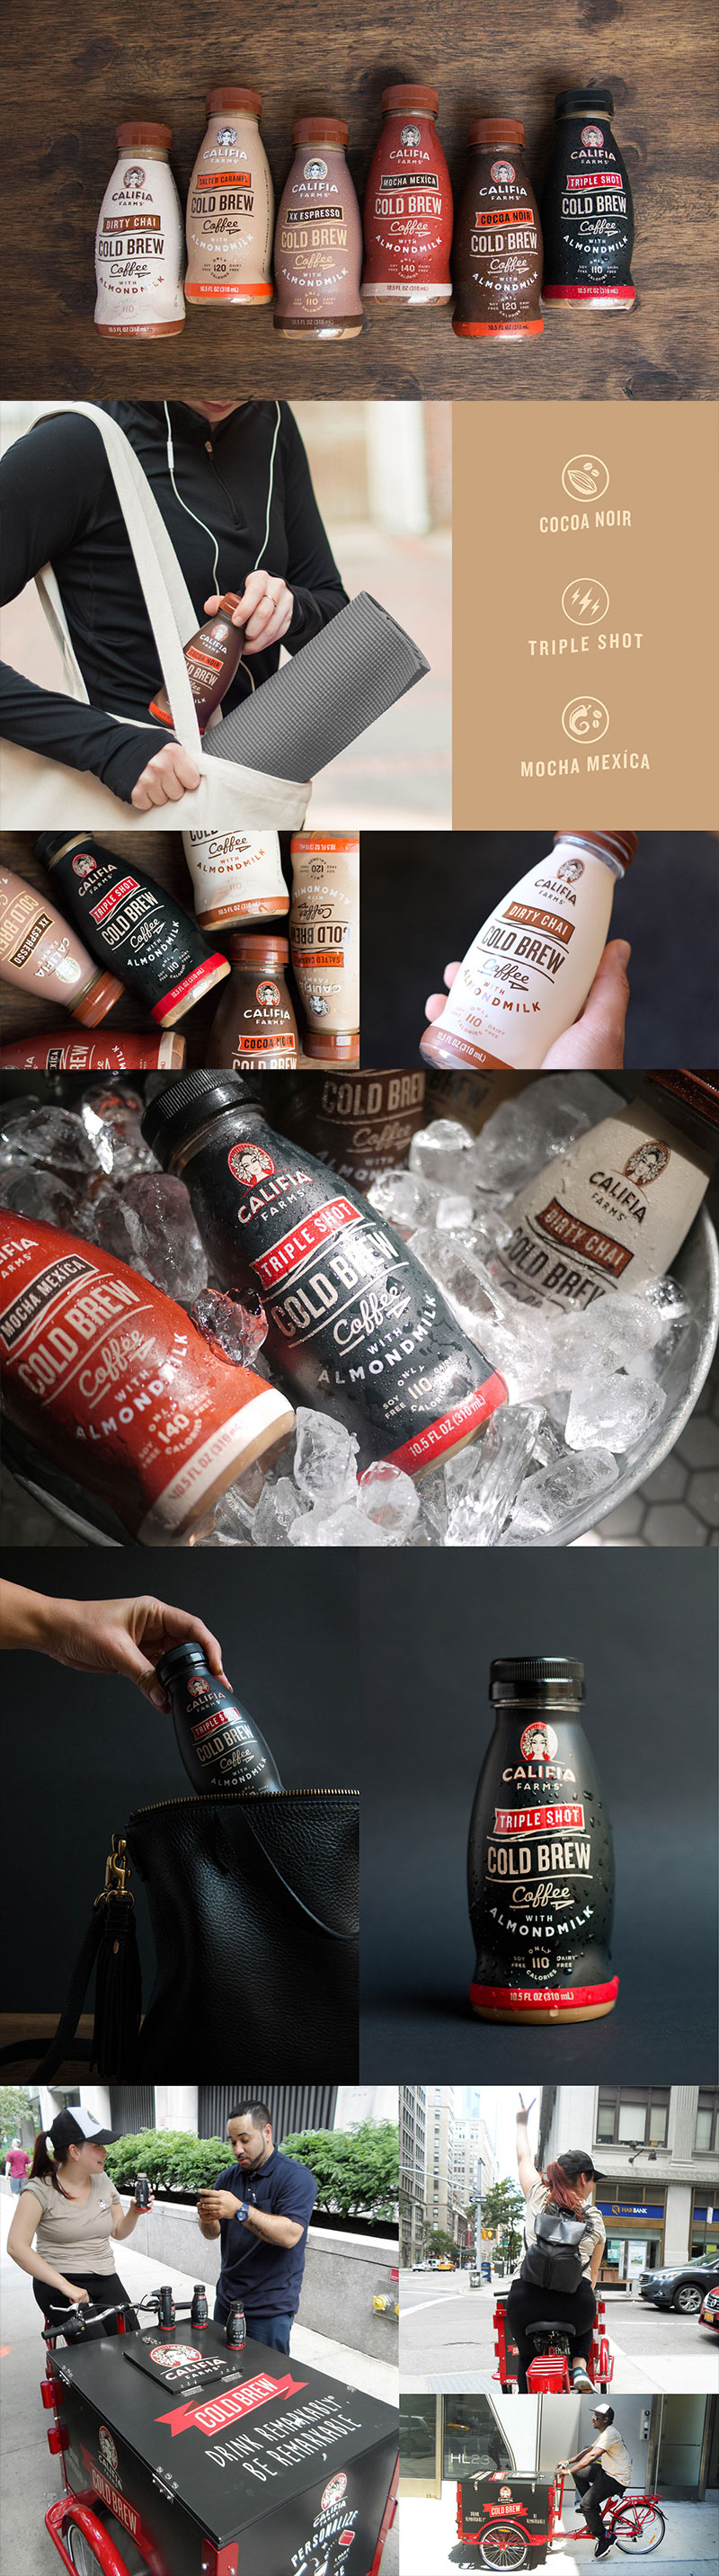 Califia Cold Brew Coffee by Farm Design